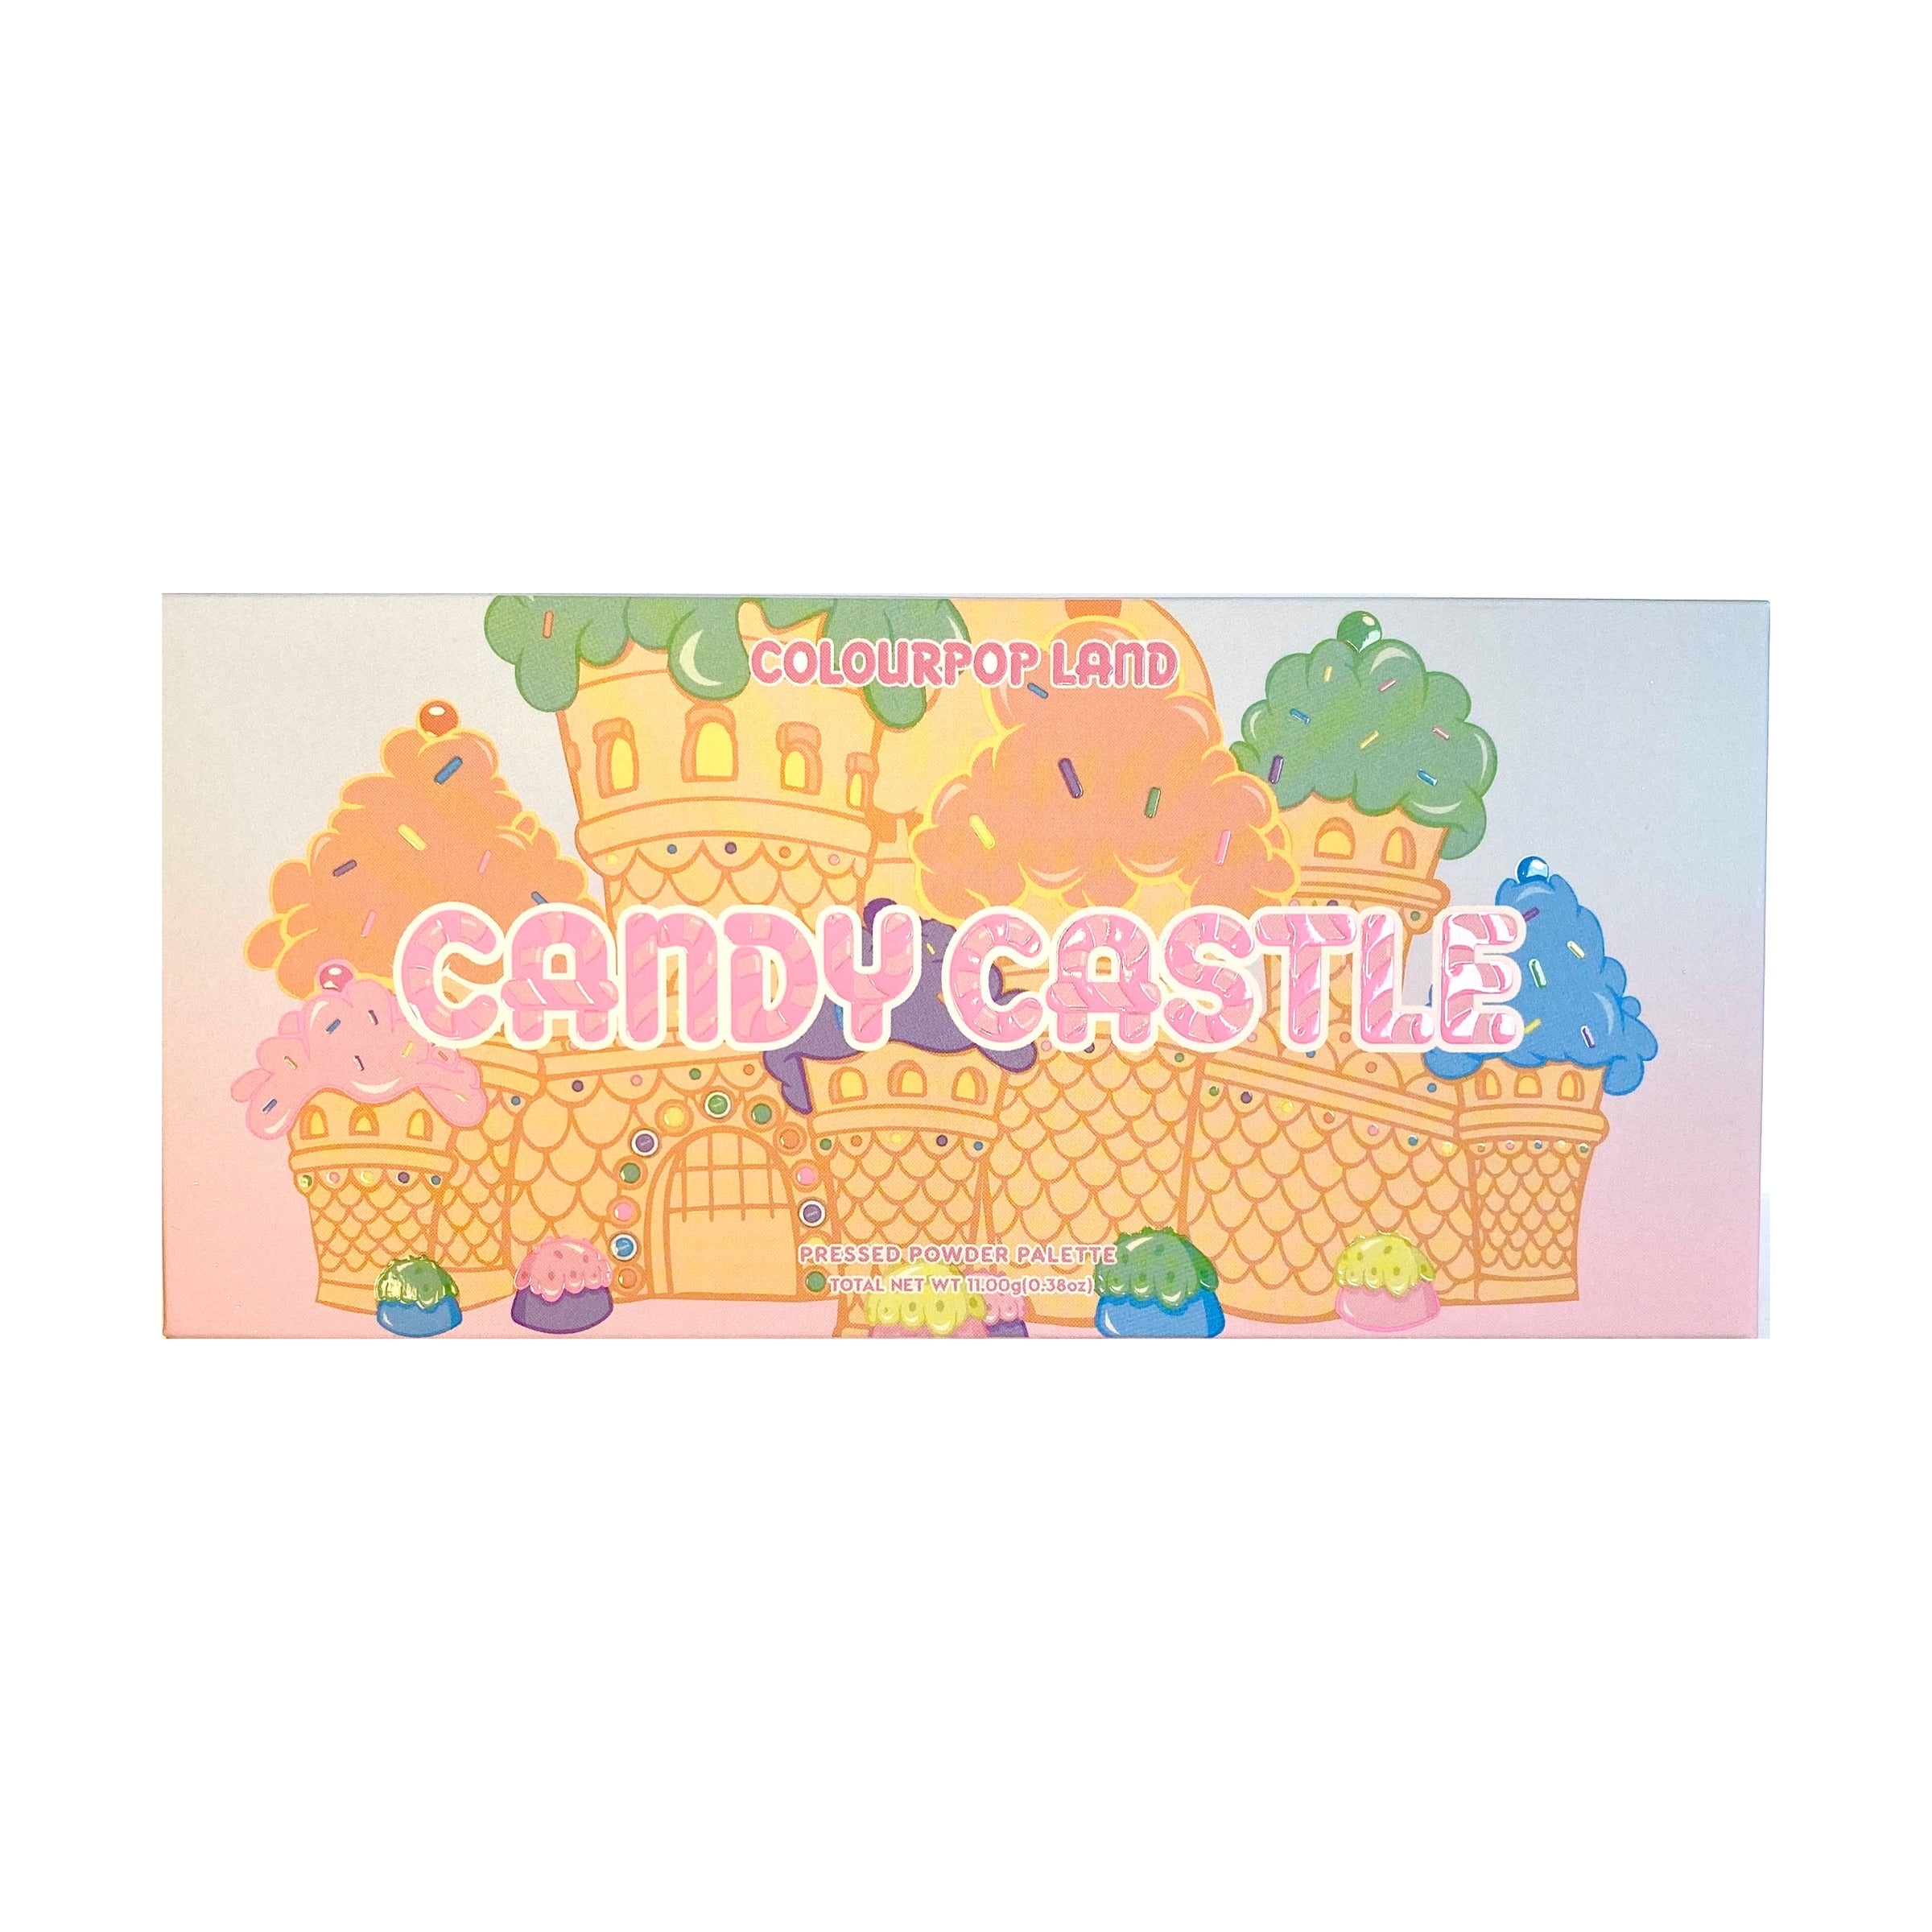 COLOURPOP Candy Castle Pressed Powder Eyeshadow Palette, eyeshadow palette, London Loves Beauty